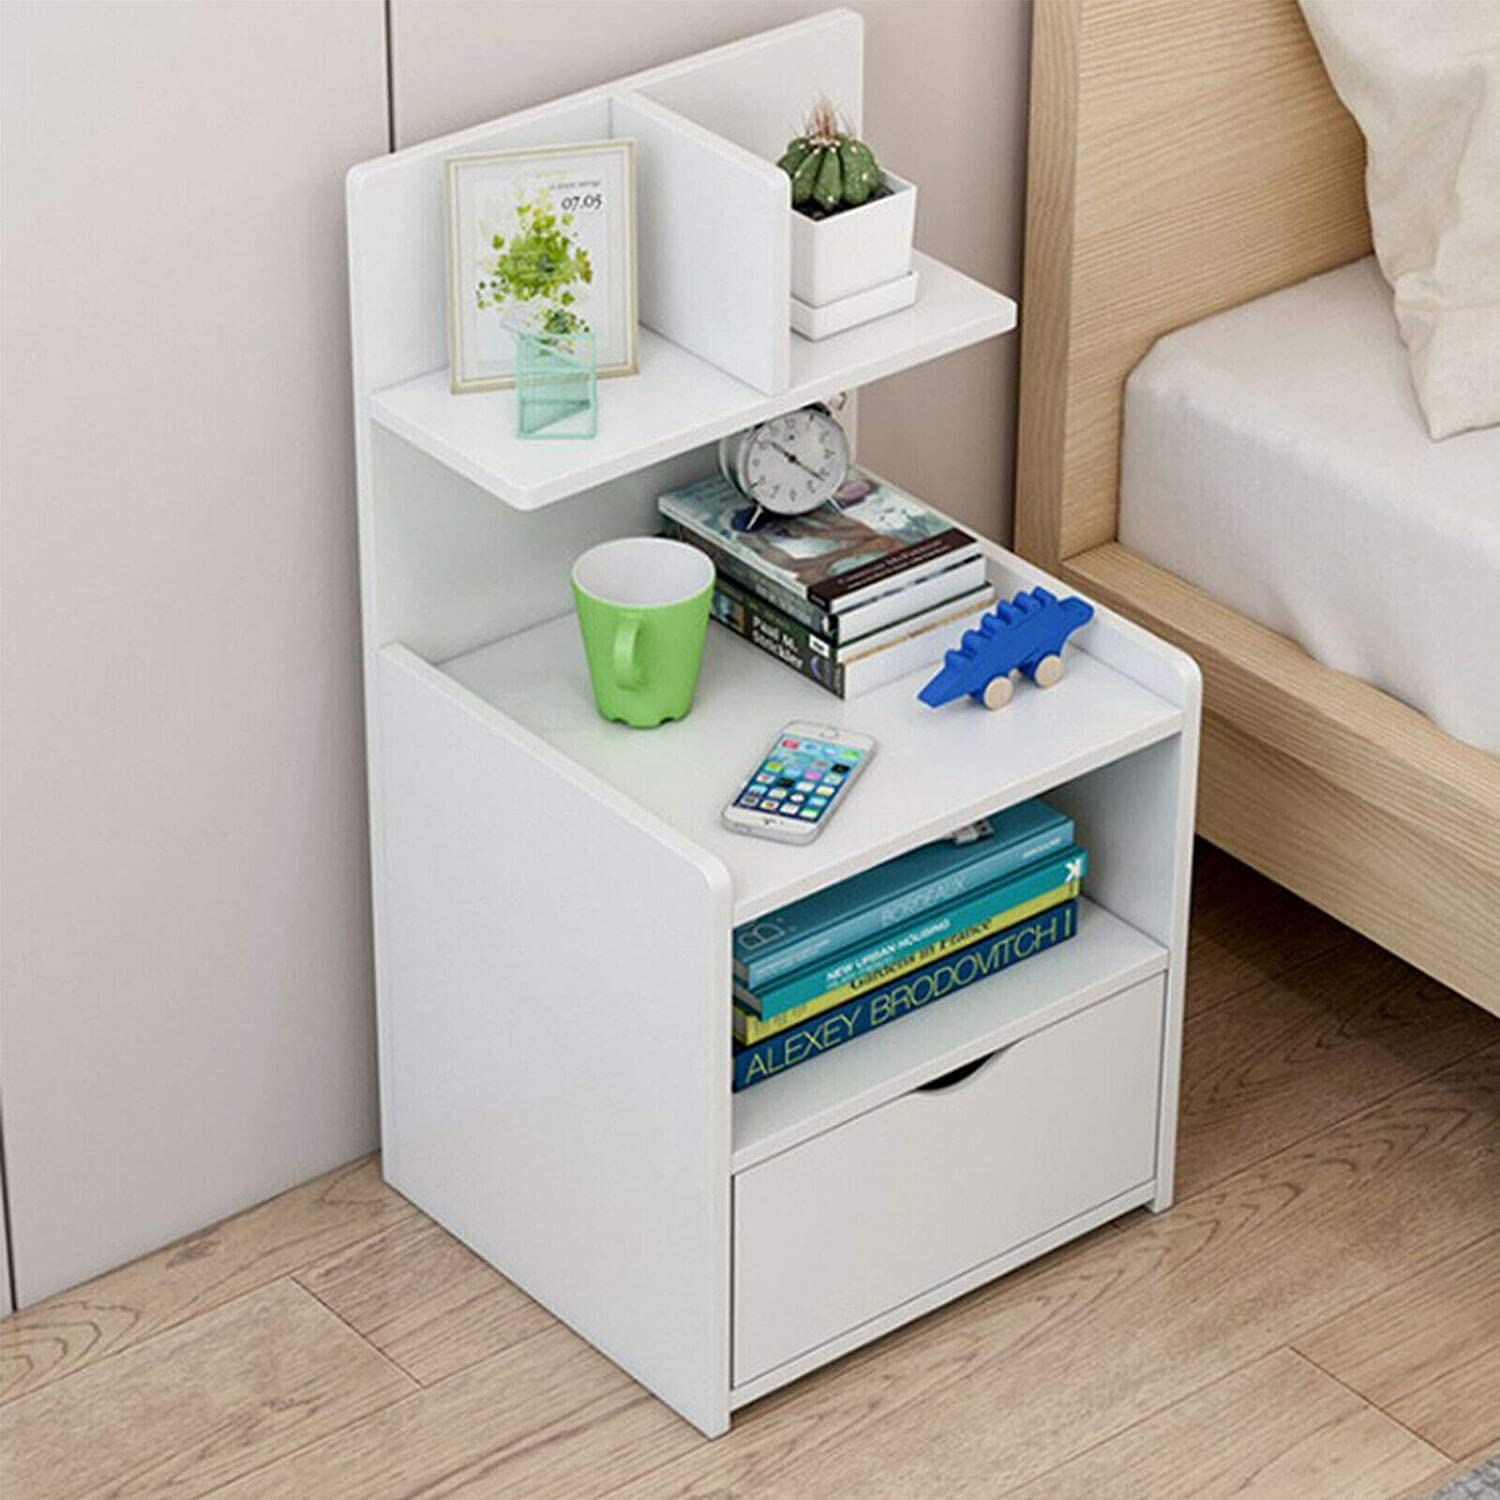 Ballshop Bedside Table Shelf Simple and Contemporary Bedroom Store Content  Ark Small Multifunctional Simple Receive Bedside Cabinet Furniture Drawer  ...